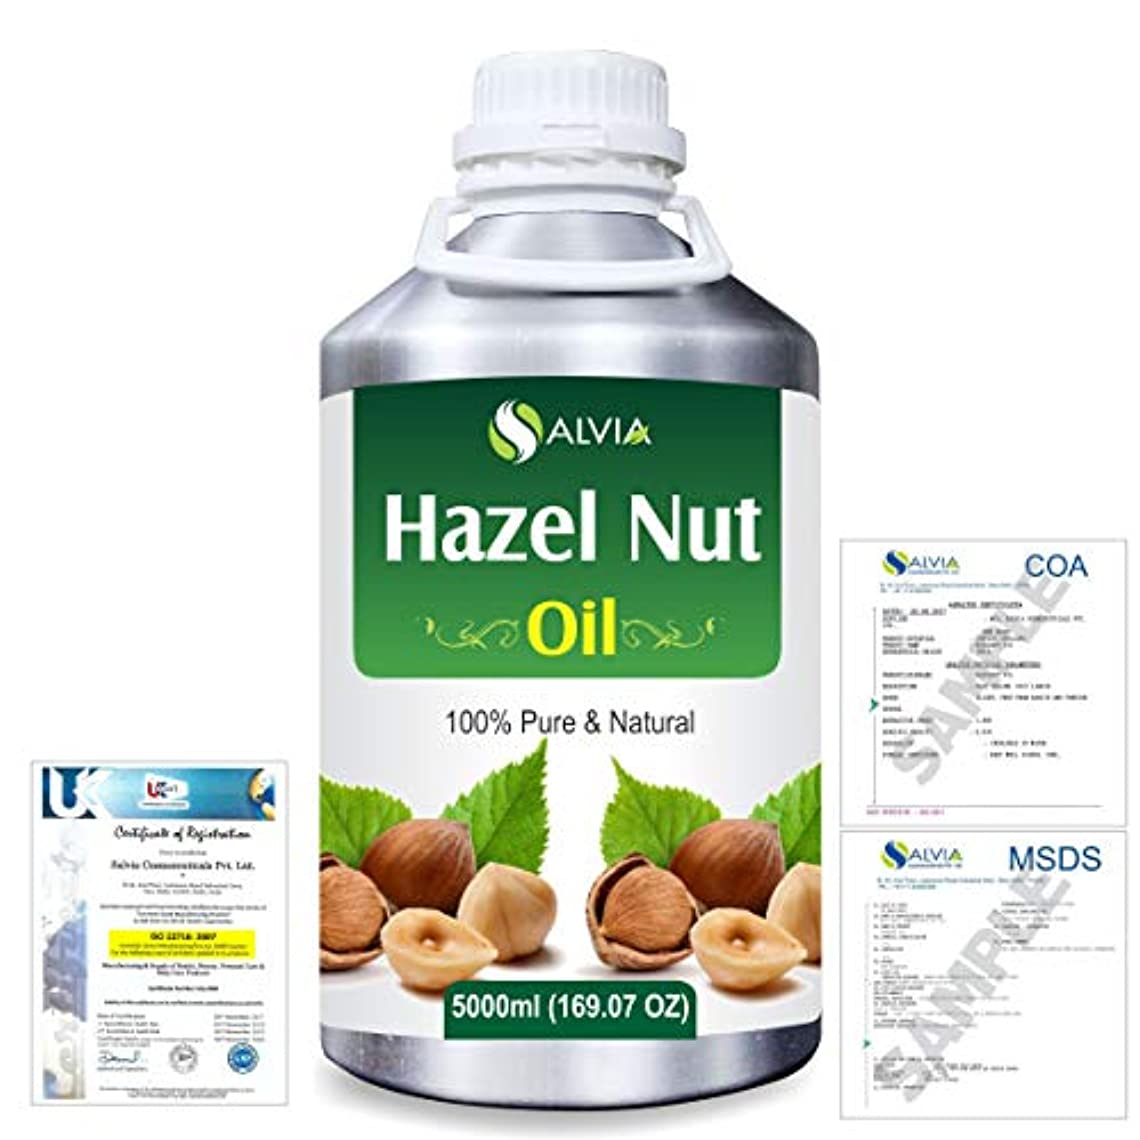 絡まる固執定義するHazel Nut (Corylus avellana) 100% Natural Pure Essential Oil 5000ml/169fl.oz.